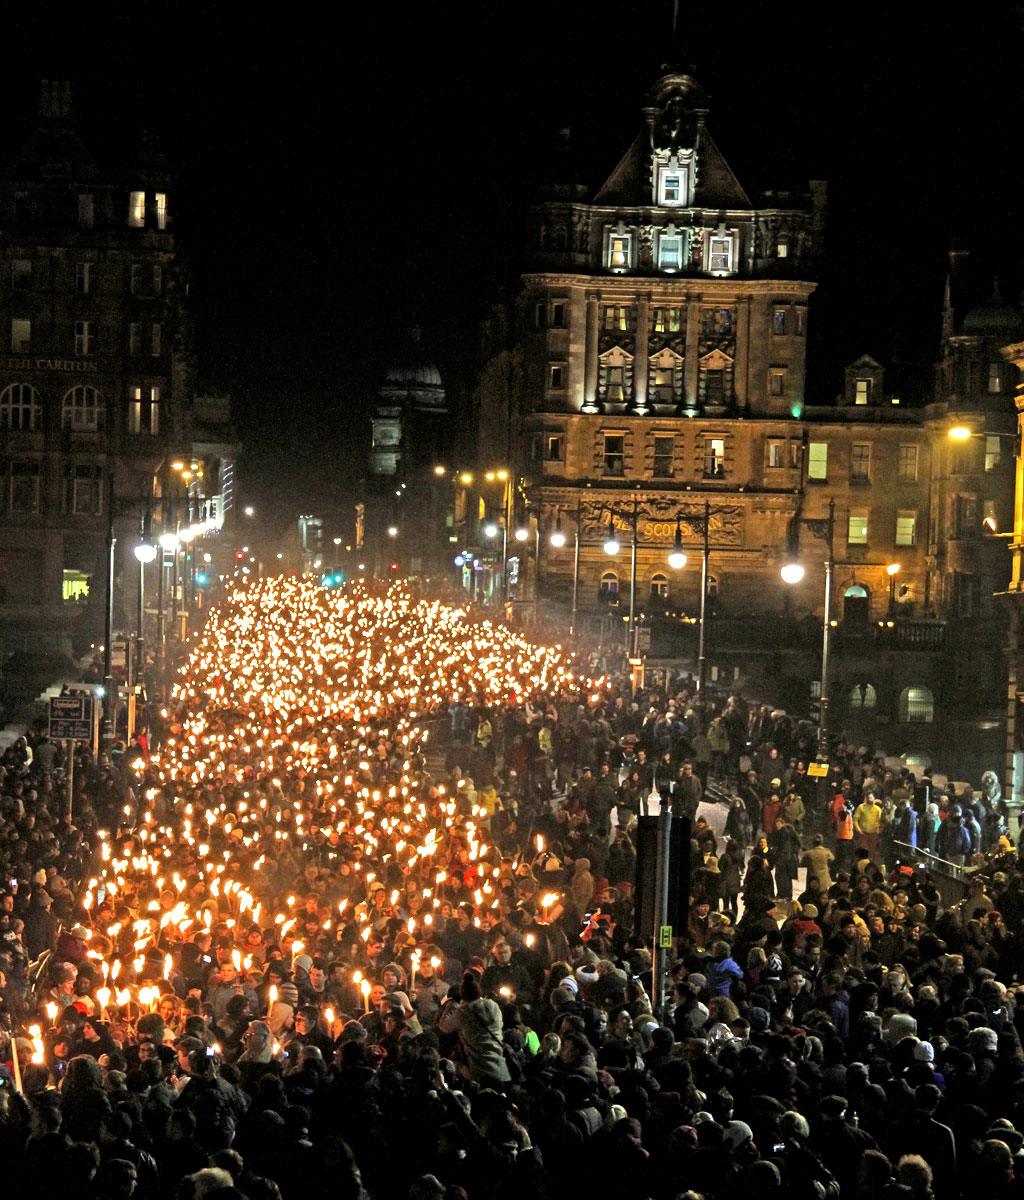 Edinburgh Torchlight Procession  -  December 30, 2012